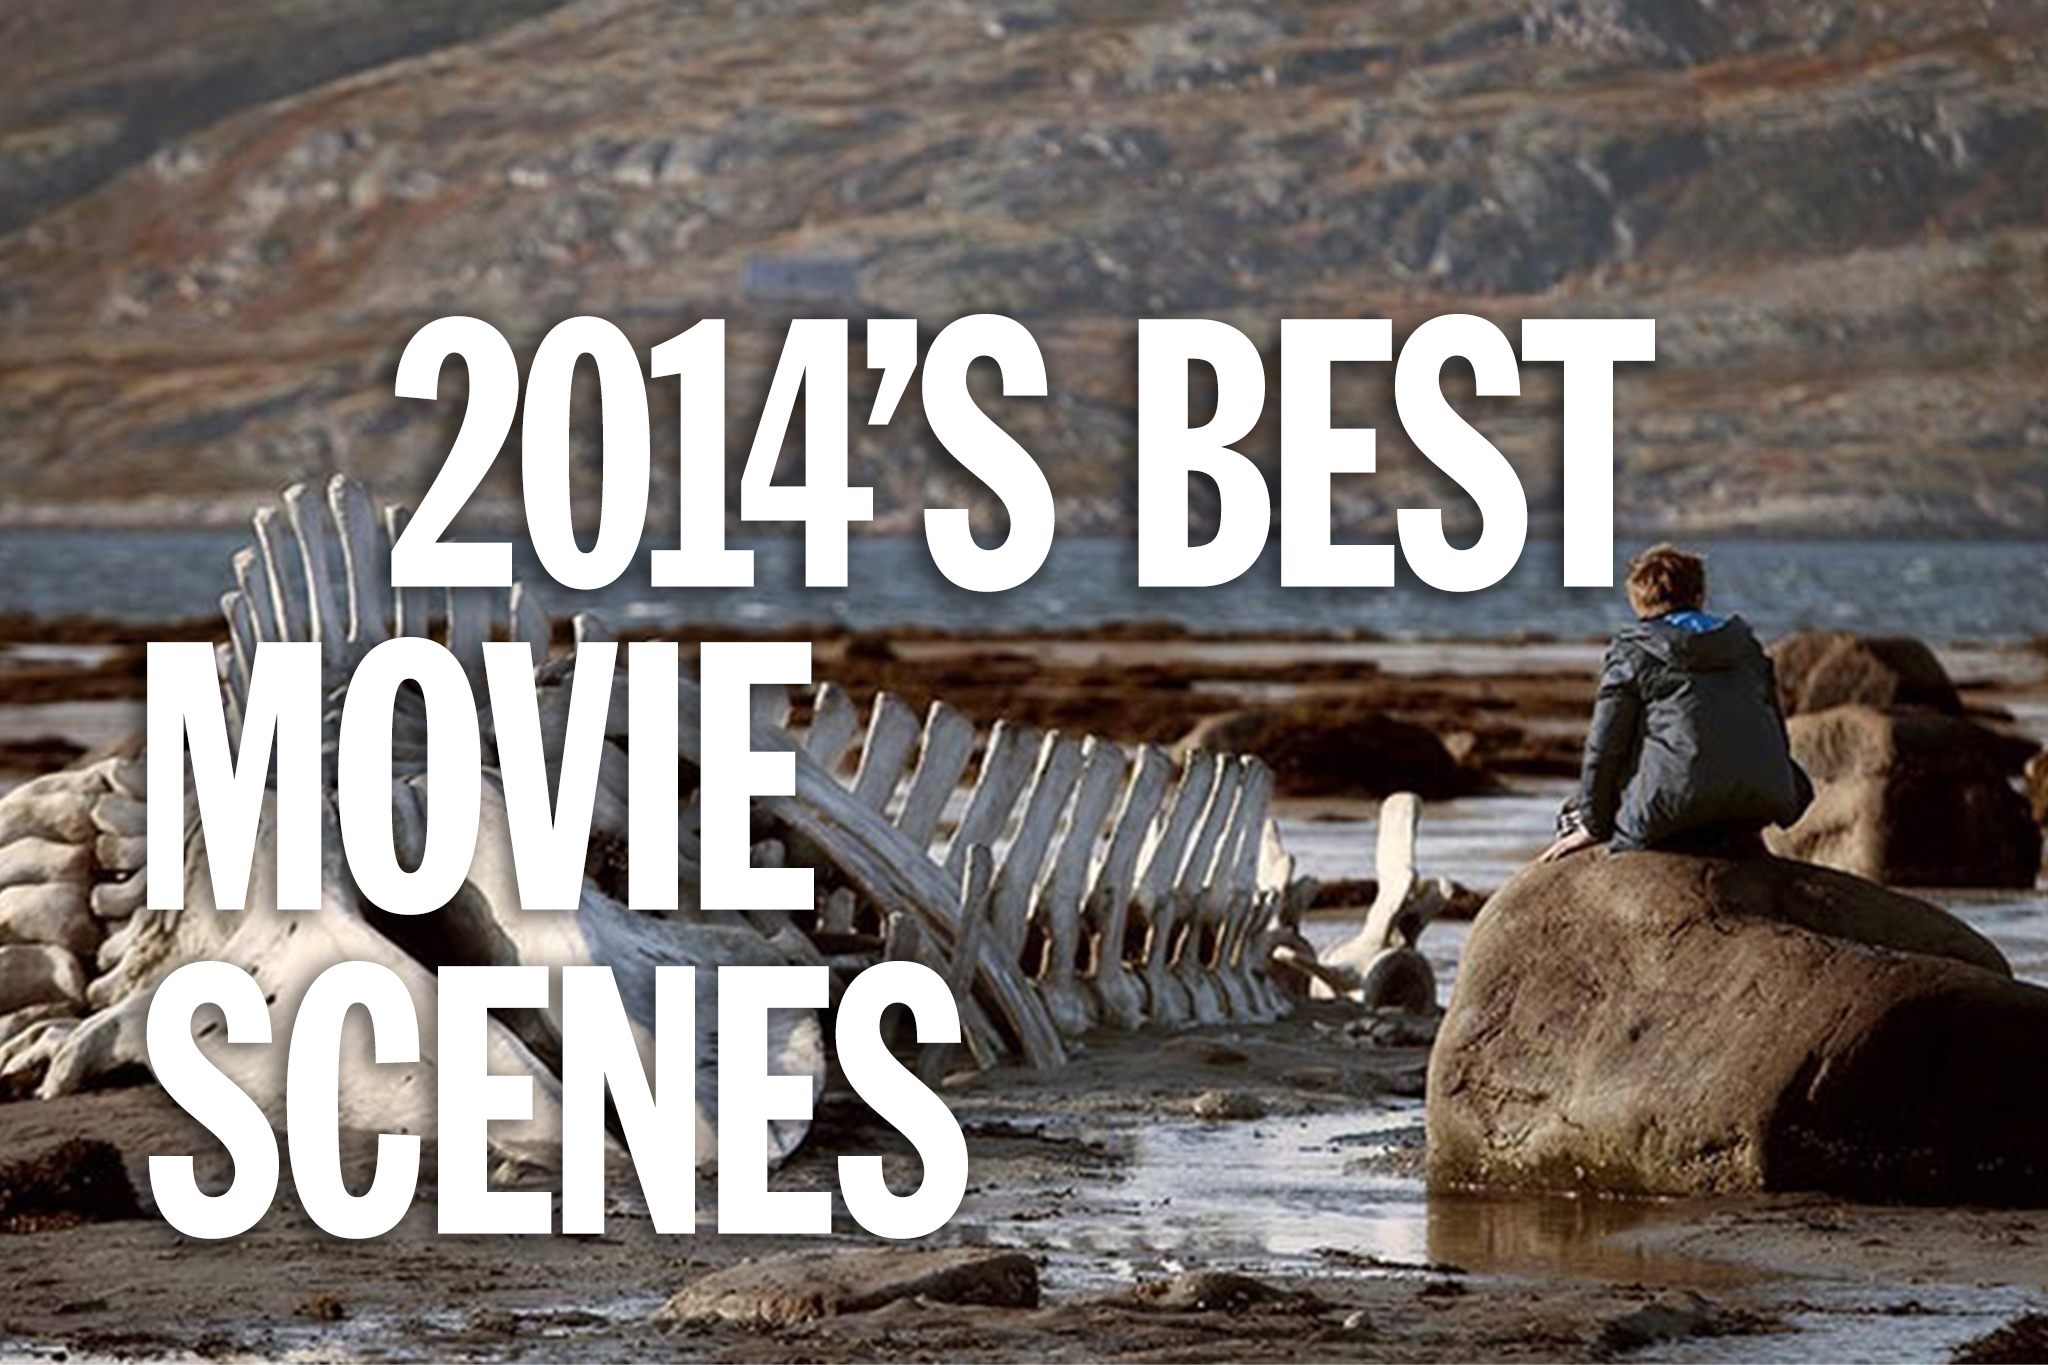 The 20 best movie scenes of 2014